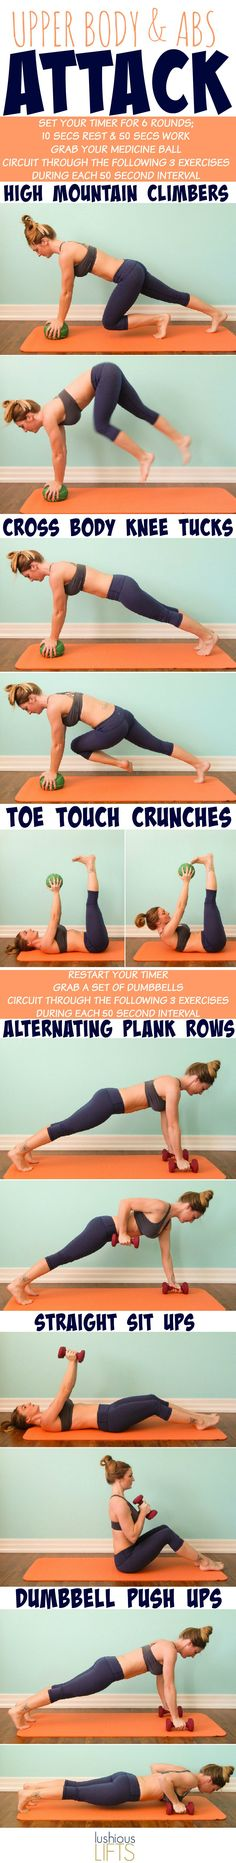 Upper Body and ABS Attack {Interval Workout} Blast some fat with these killer high mountain climbers with cross body knee tucks - a great way to begin this fat attack workout!